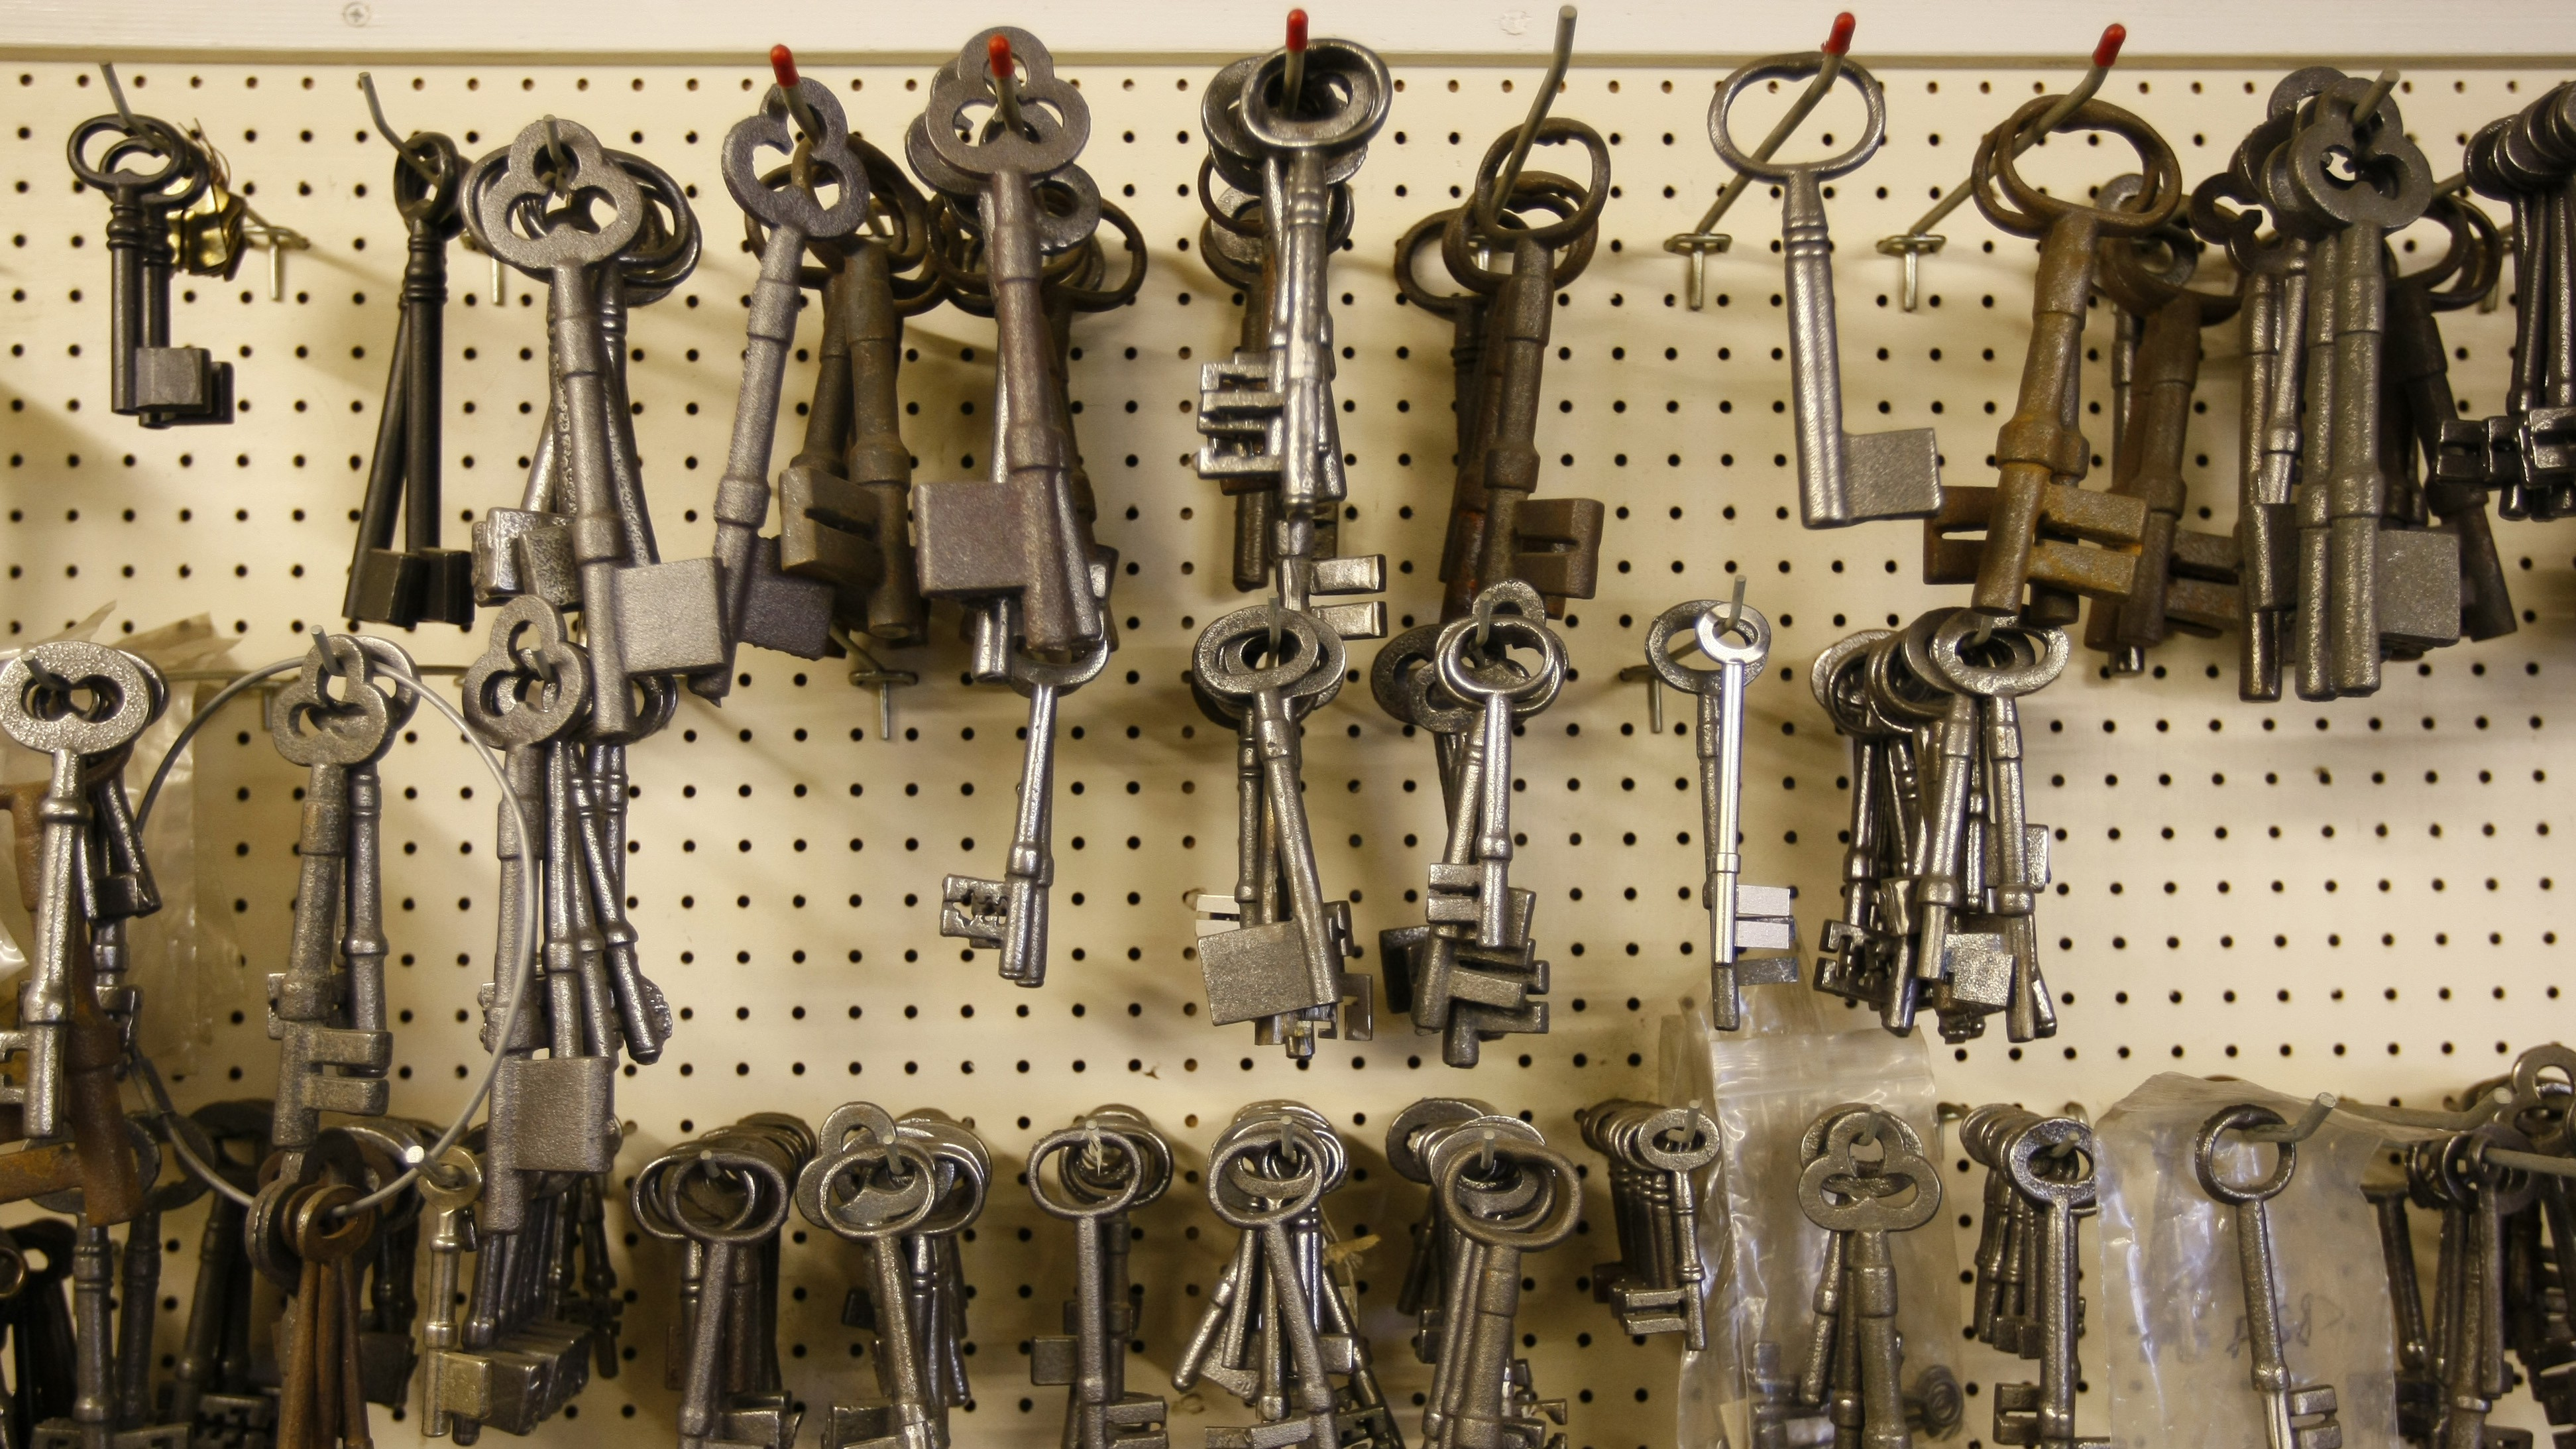 Key blanks hang on pegs at a lock and key shop in Lichfield